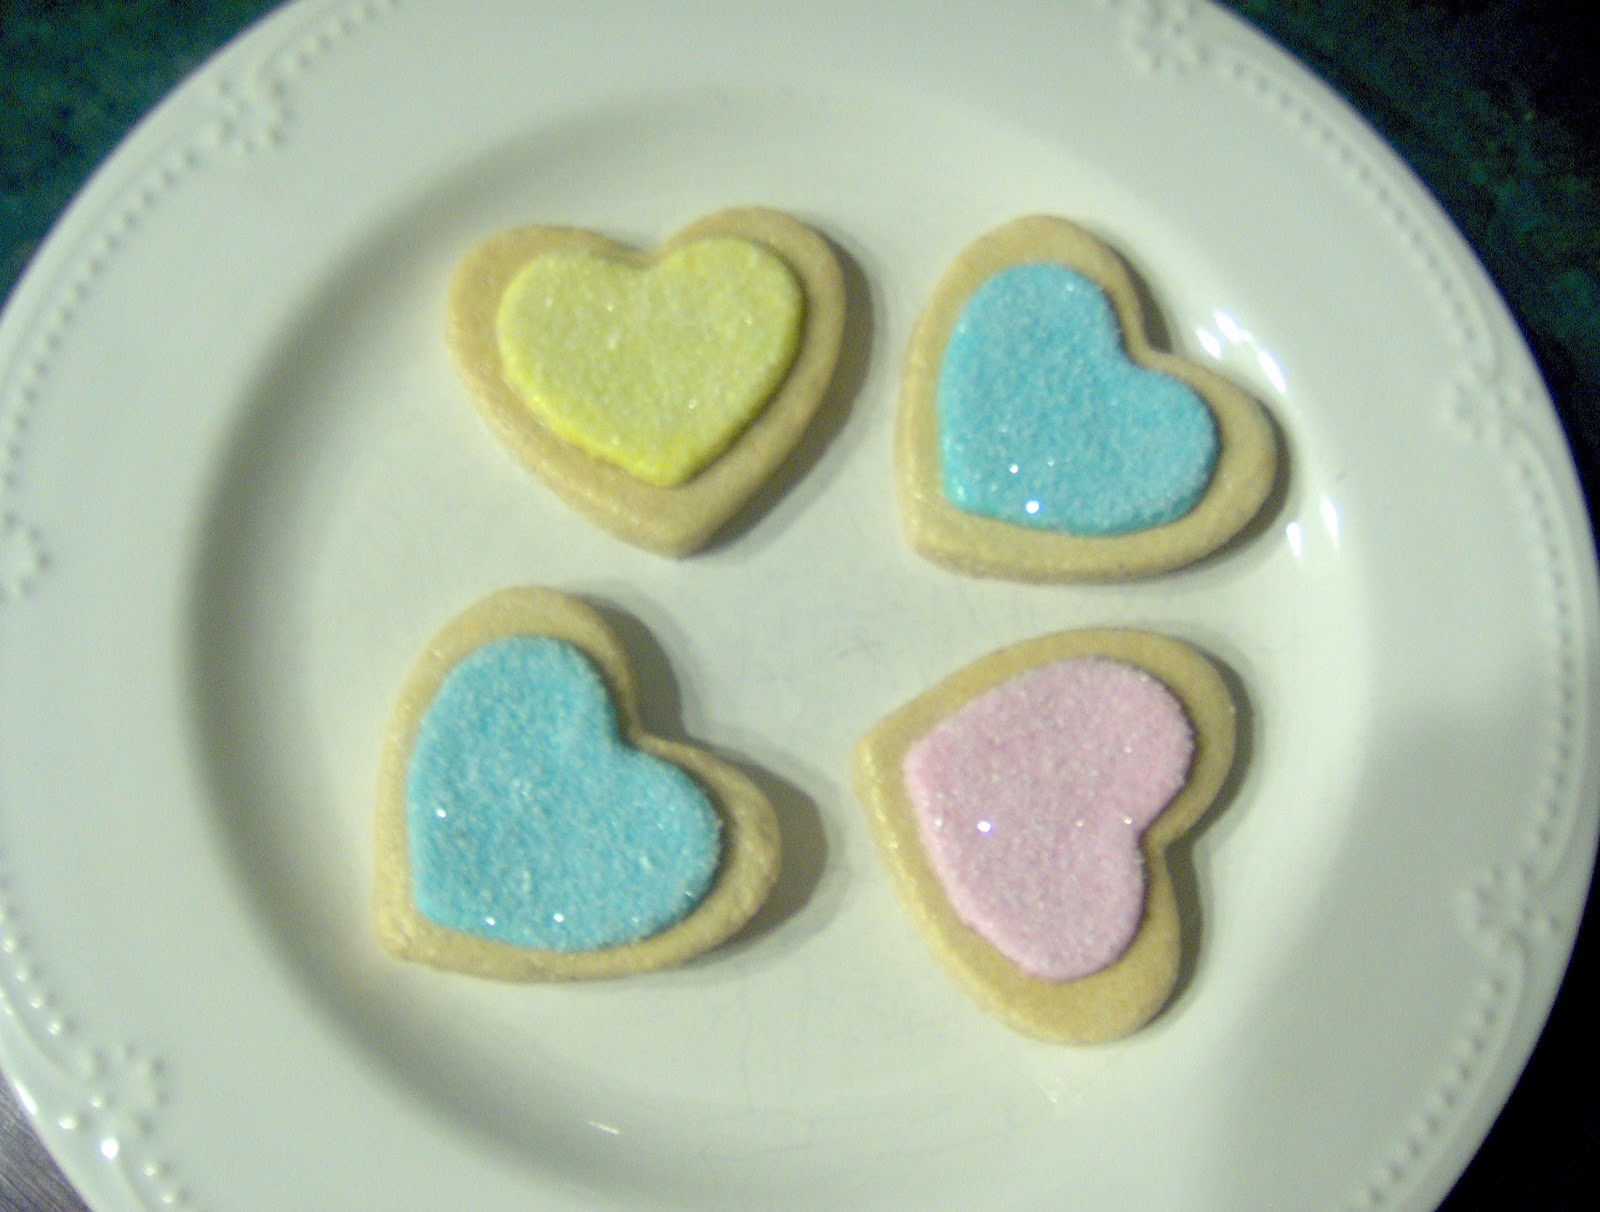 The house of normandy do it yourself do it yourself decorative valentine cookies solutioingenieria Choice Image